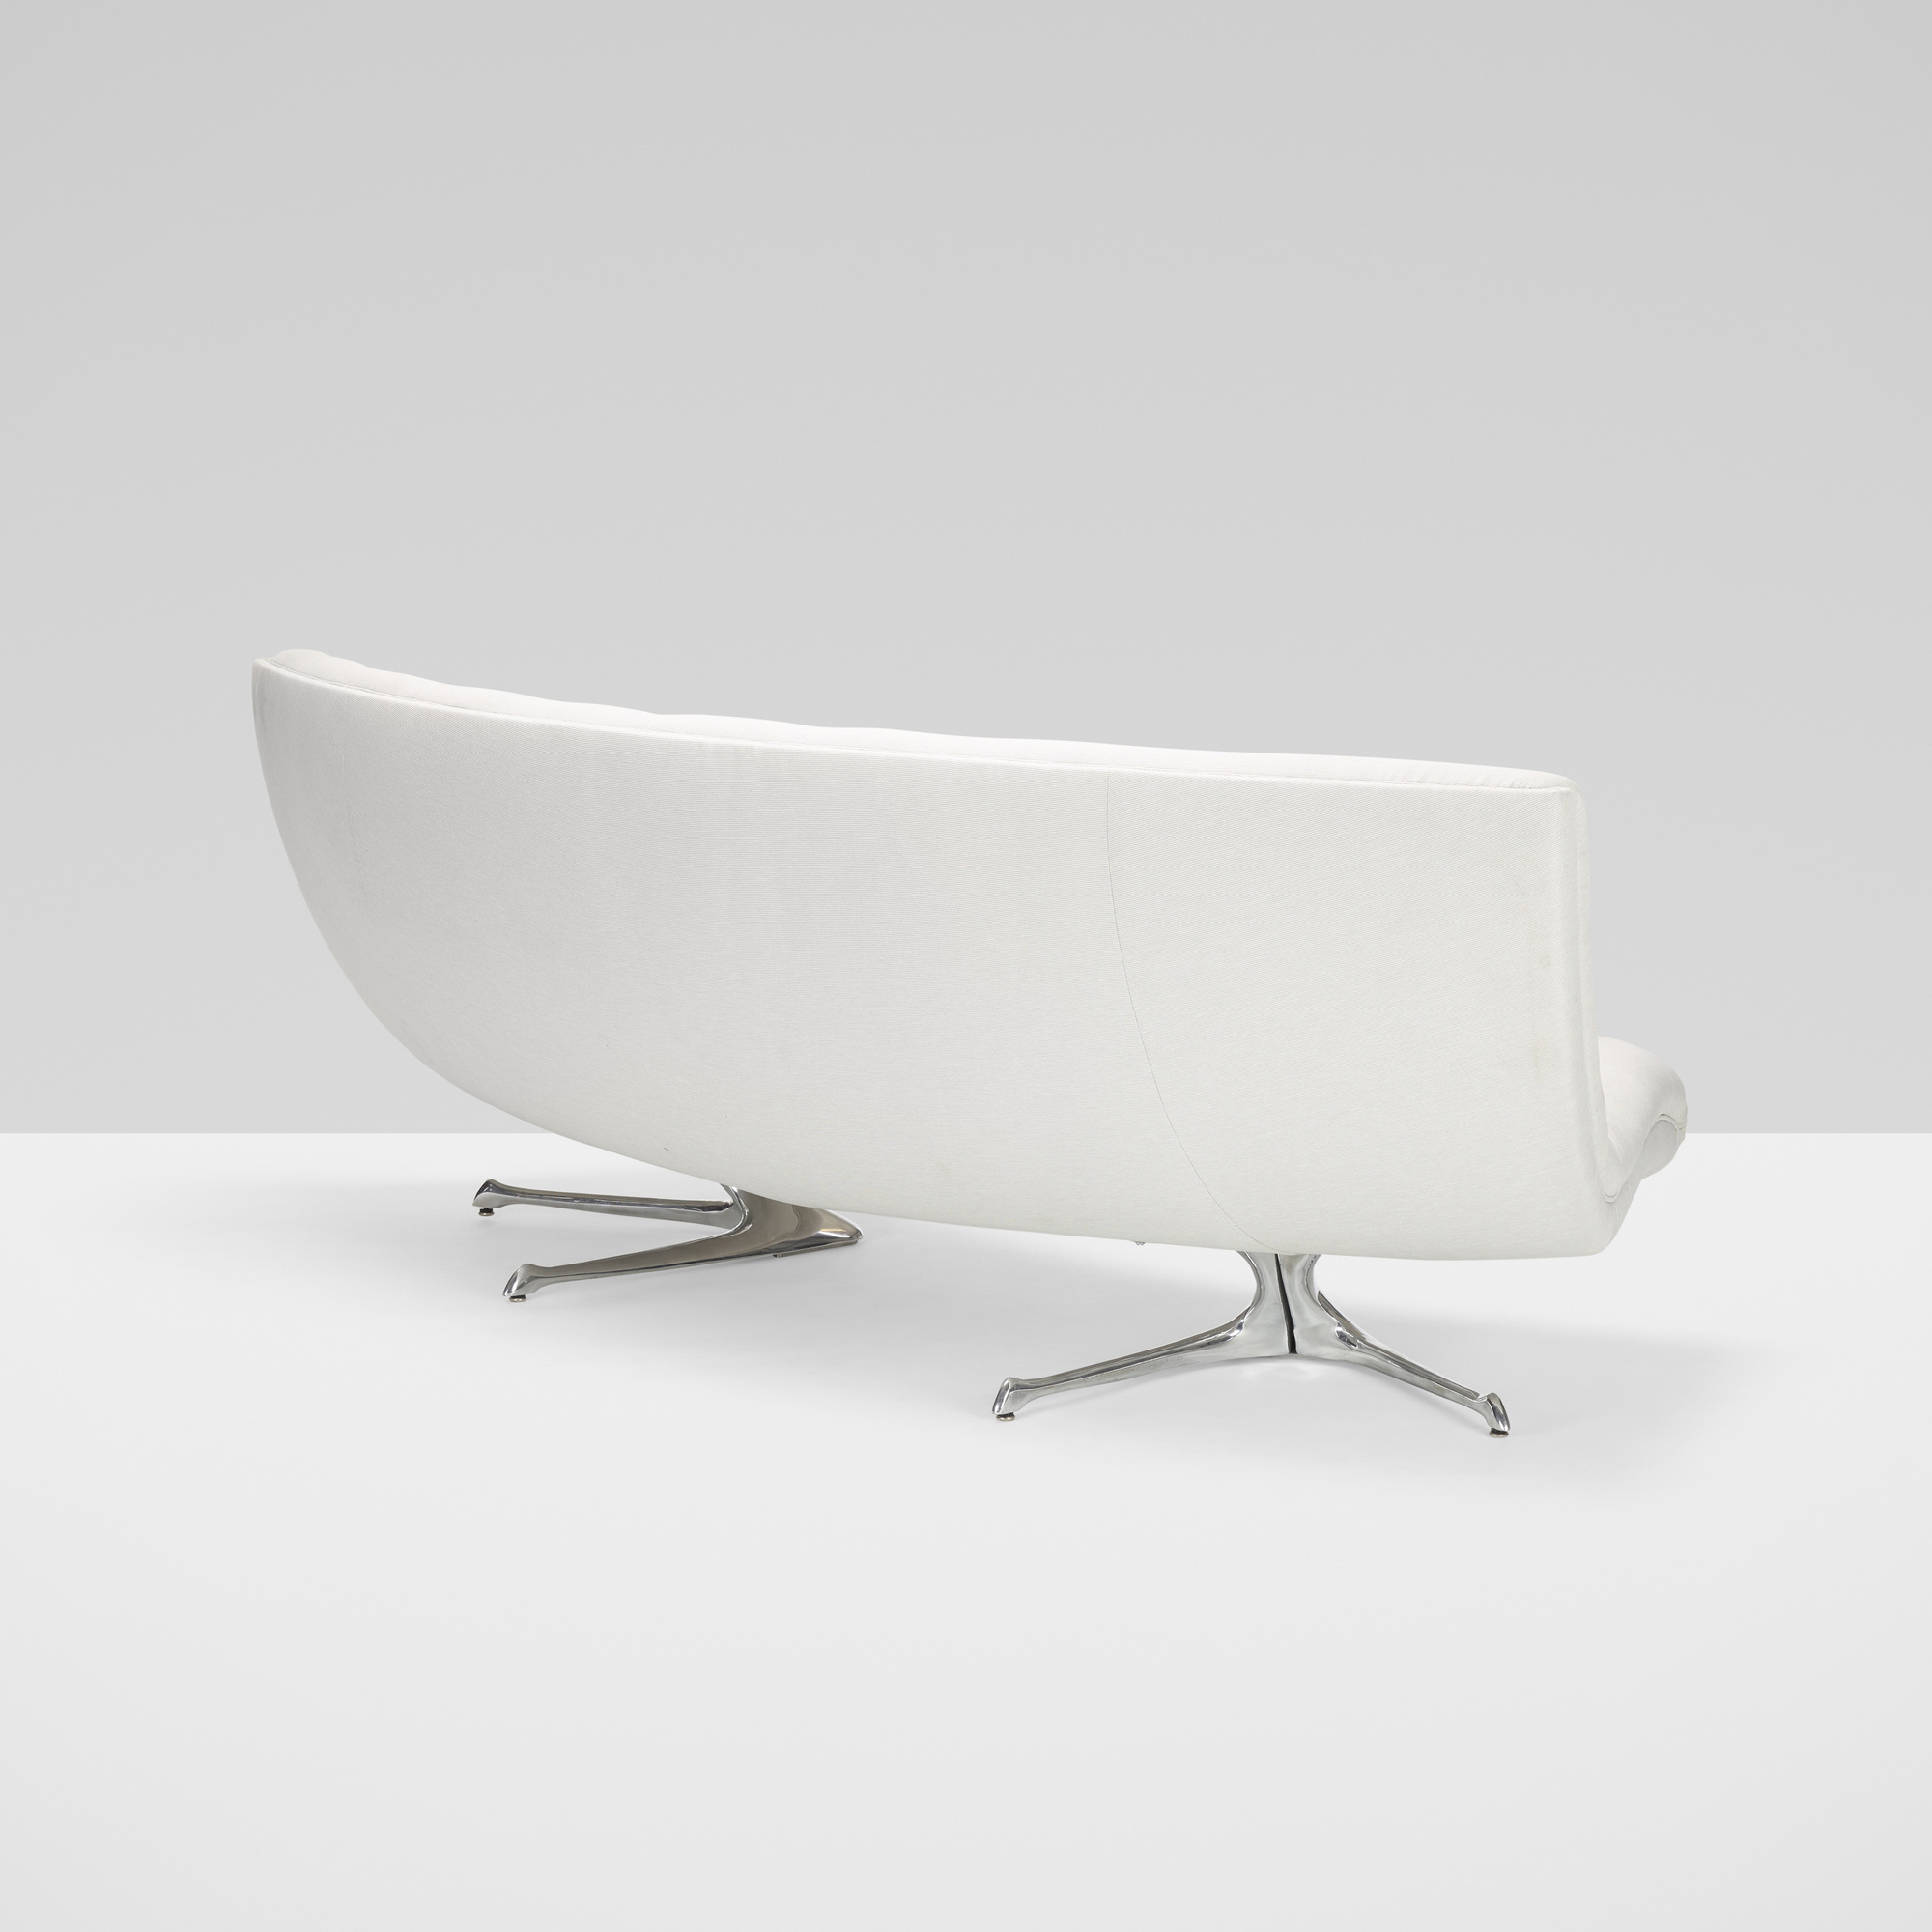 408: Vladimir Kagan / Unicorn sofa (3 of 4)